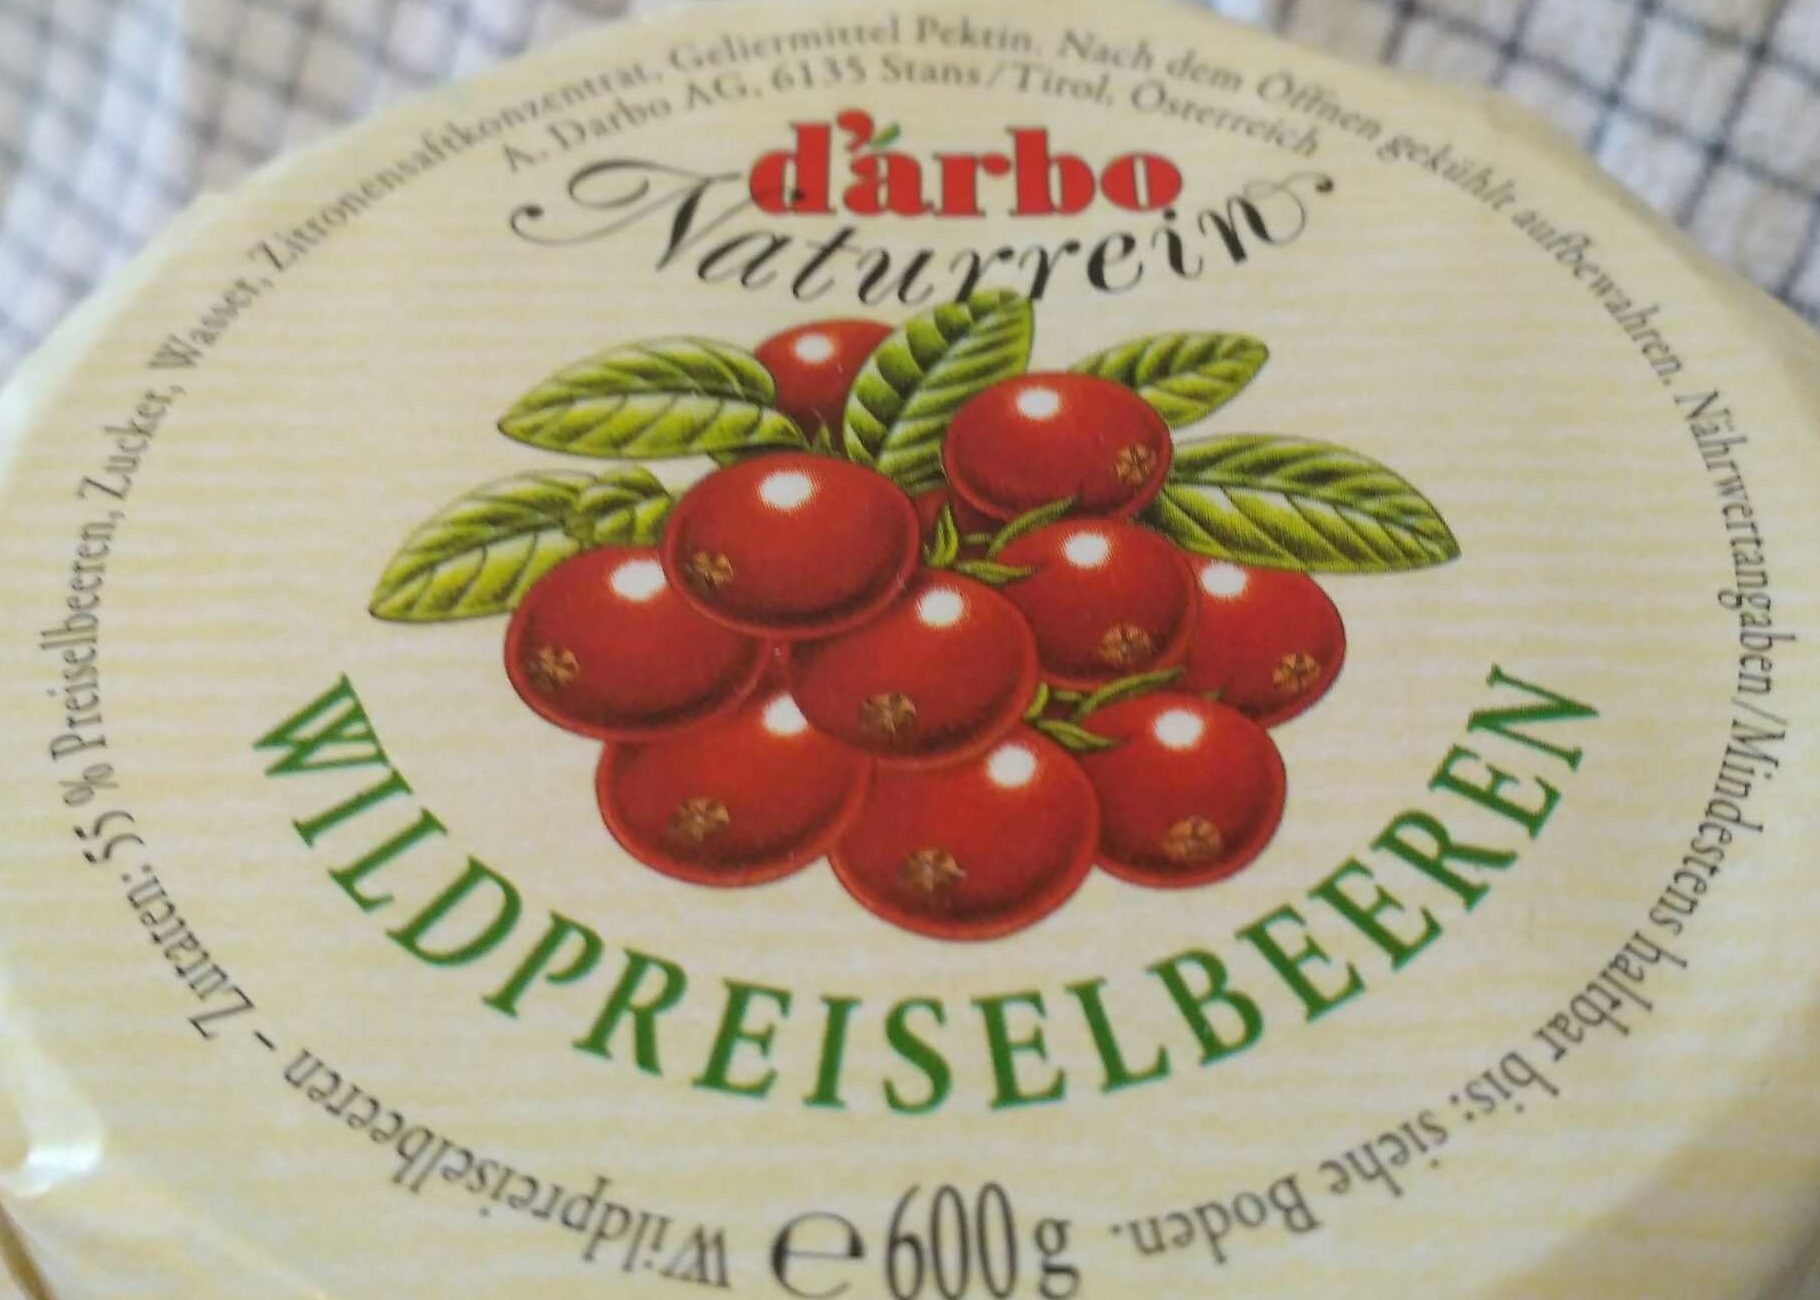 Wildpreiselbeeren - Ingredients